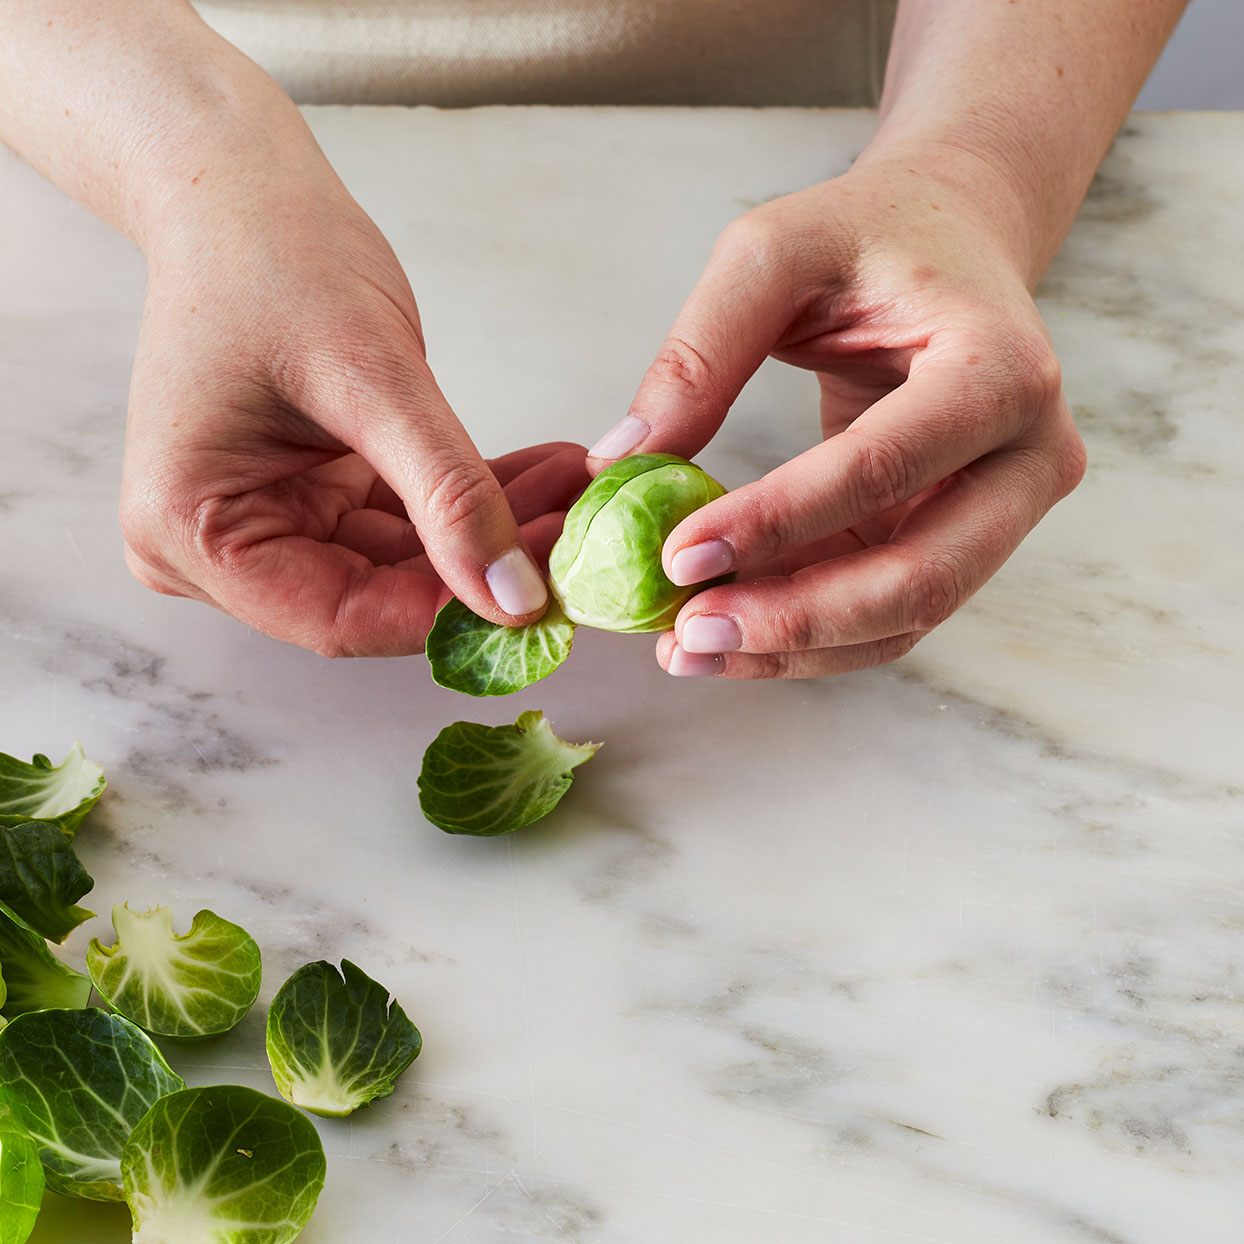 how-to-make-brussels-sprouts-chips